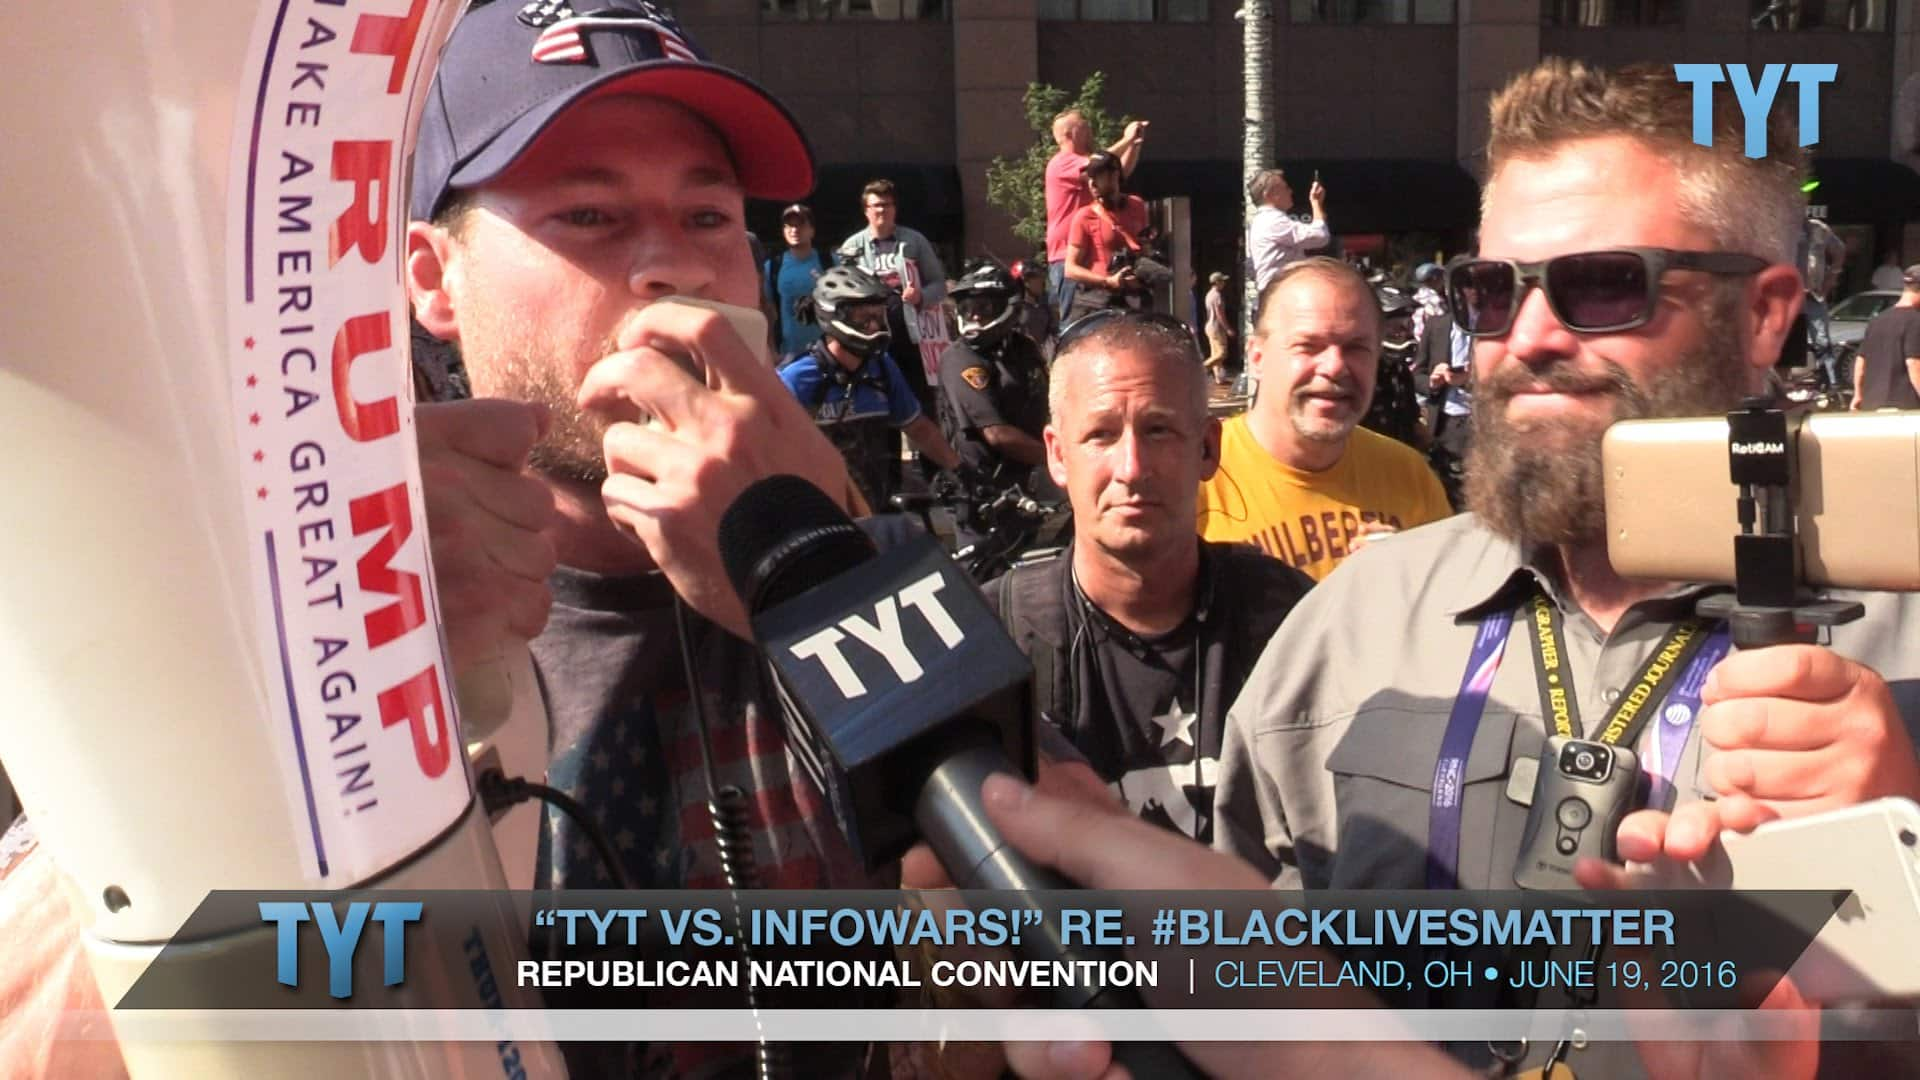 TYT vs. InfoWars re. #BlackLivesMatter At RNC Convention 16